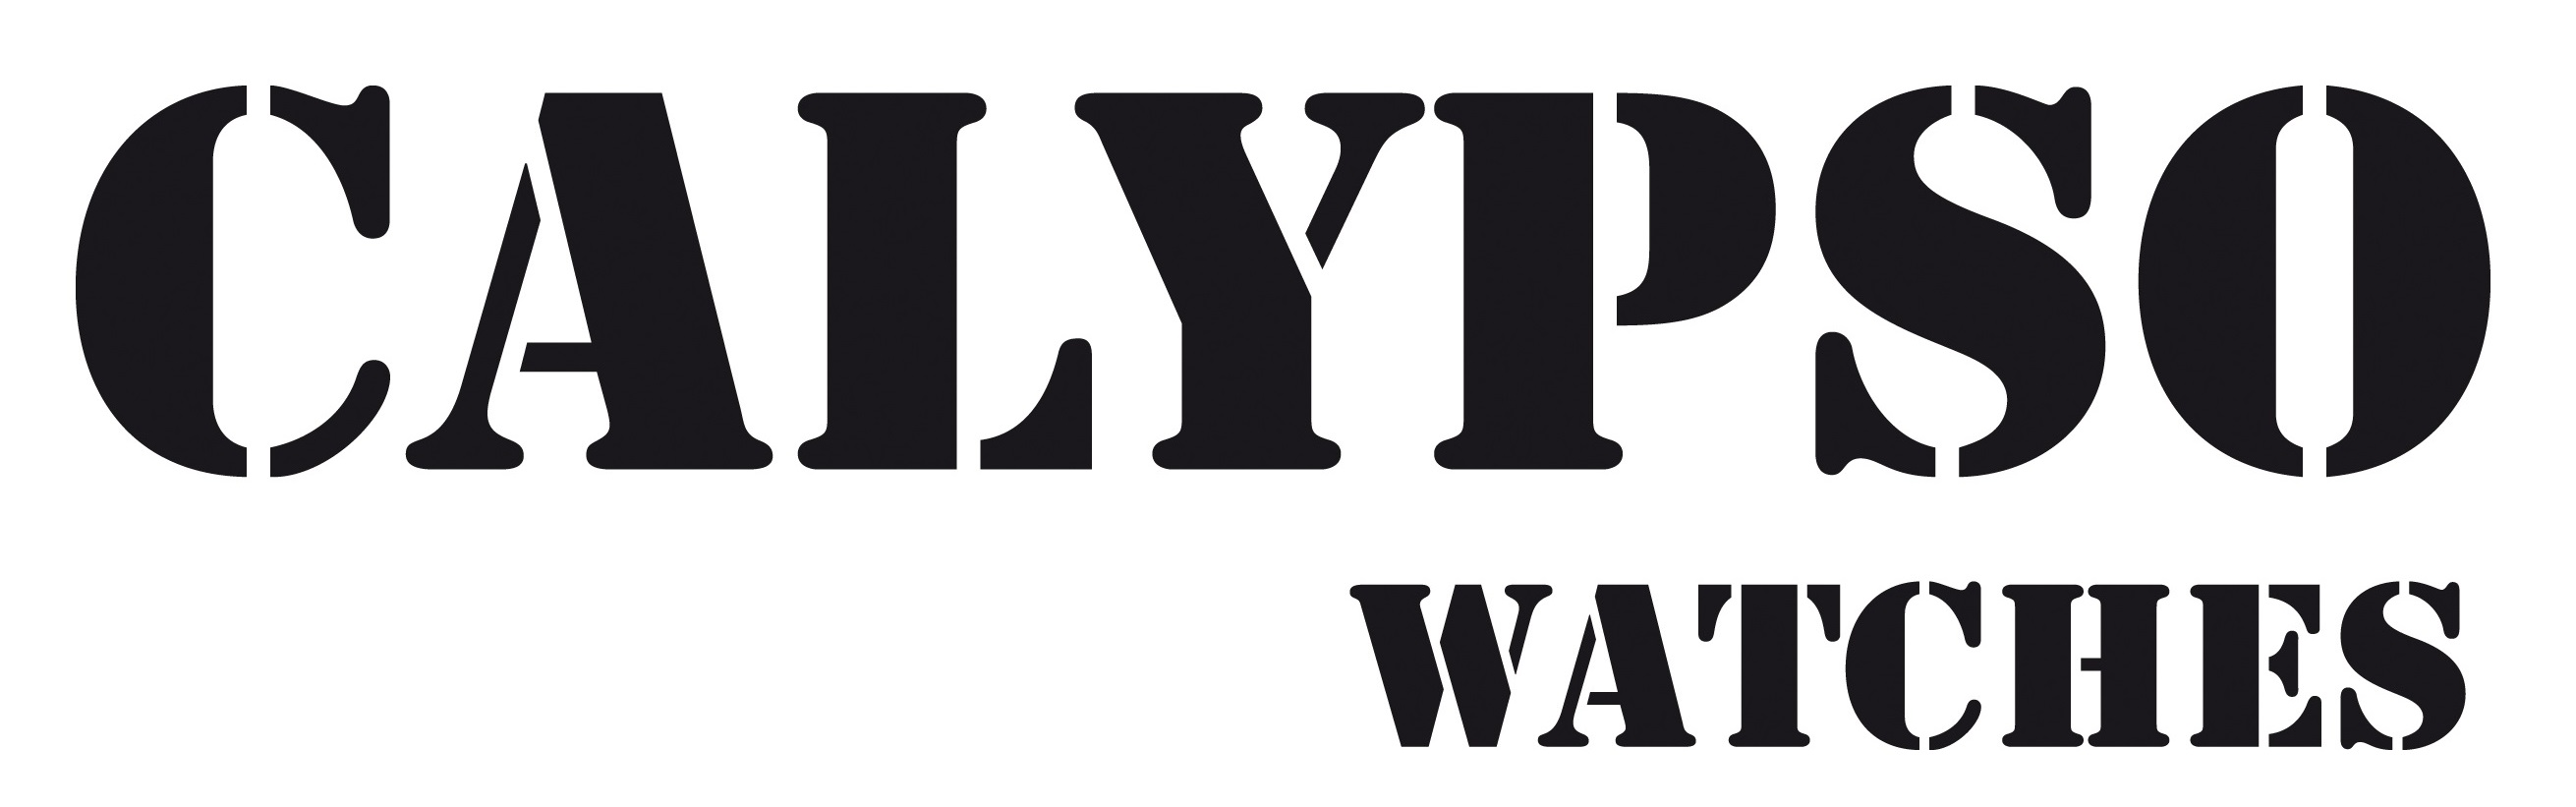 Order your original replacement Calypso watch straps at Watchstraps-batteries.com